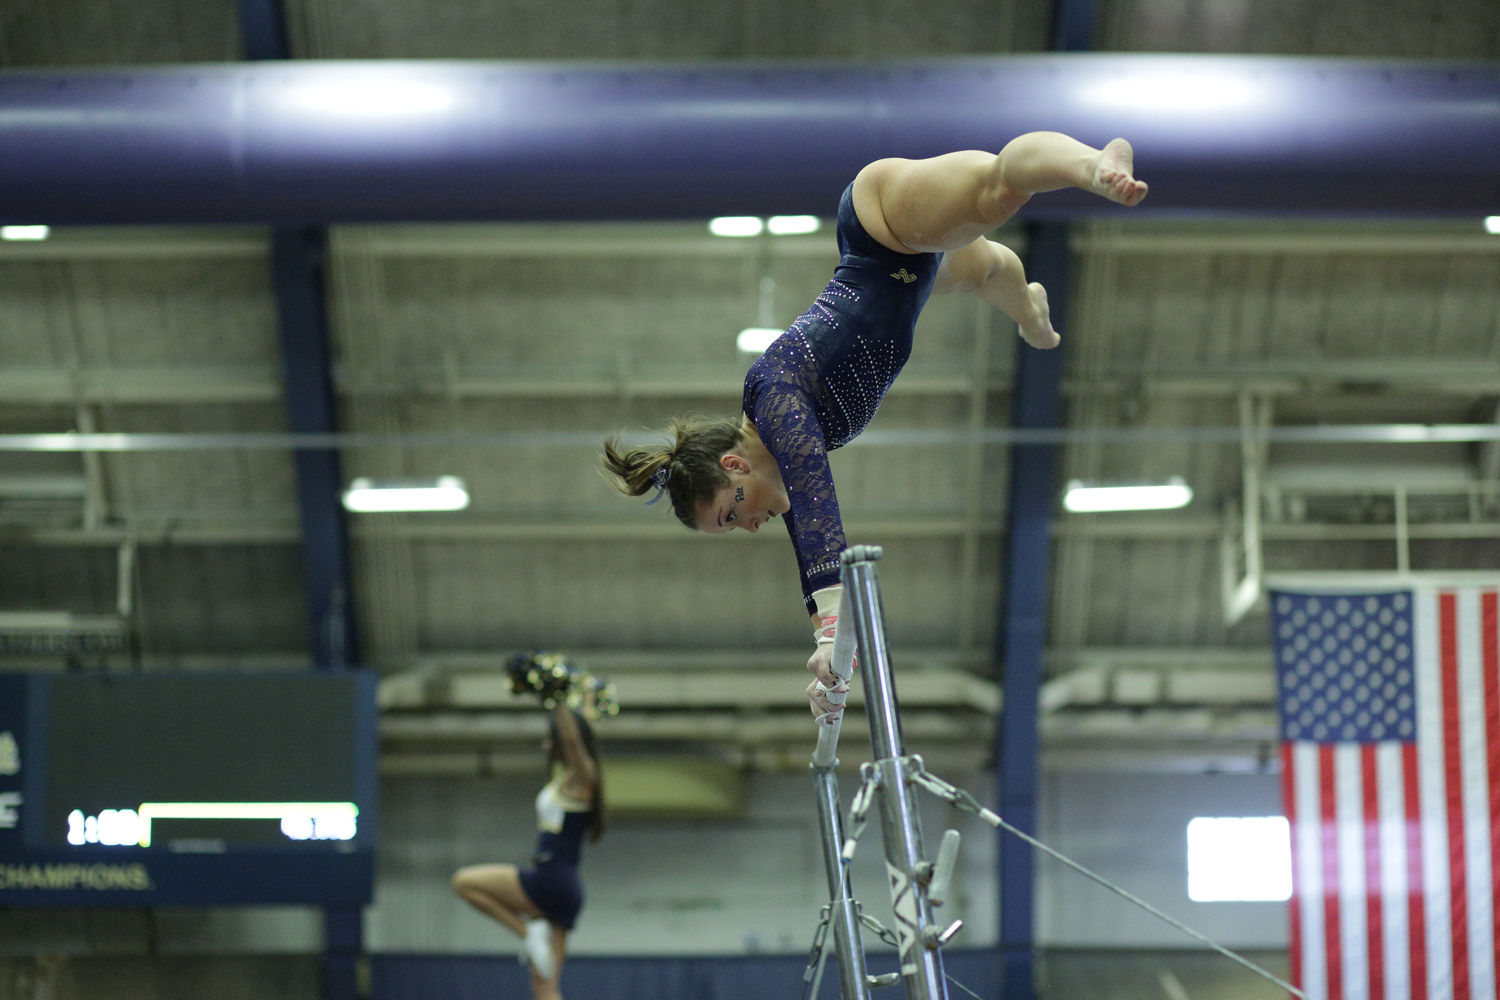 Sophomore Haley Brechwald, pictured here at a Jan. 20, 2018, meet vs. New Hampshire, received a score of 9.850 on vault. This score tied her career high for a fifth time.